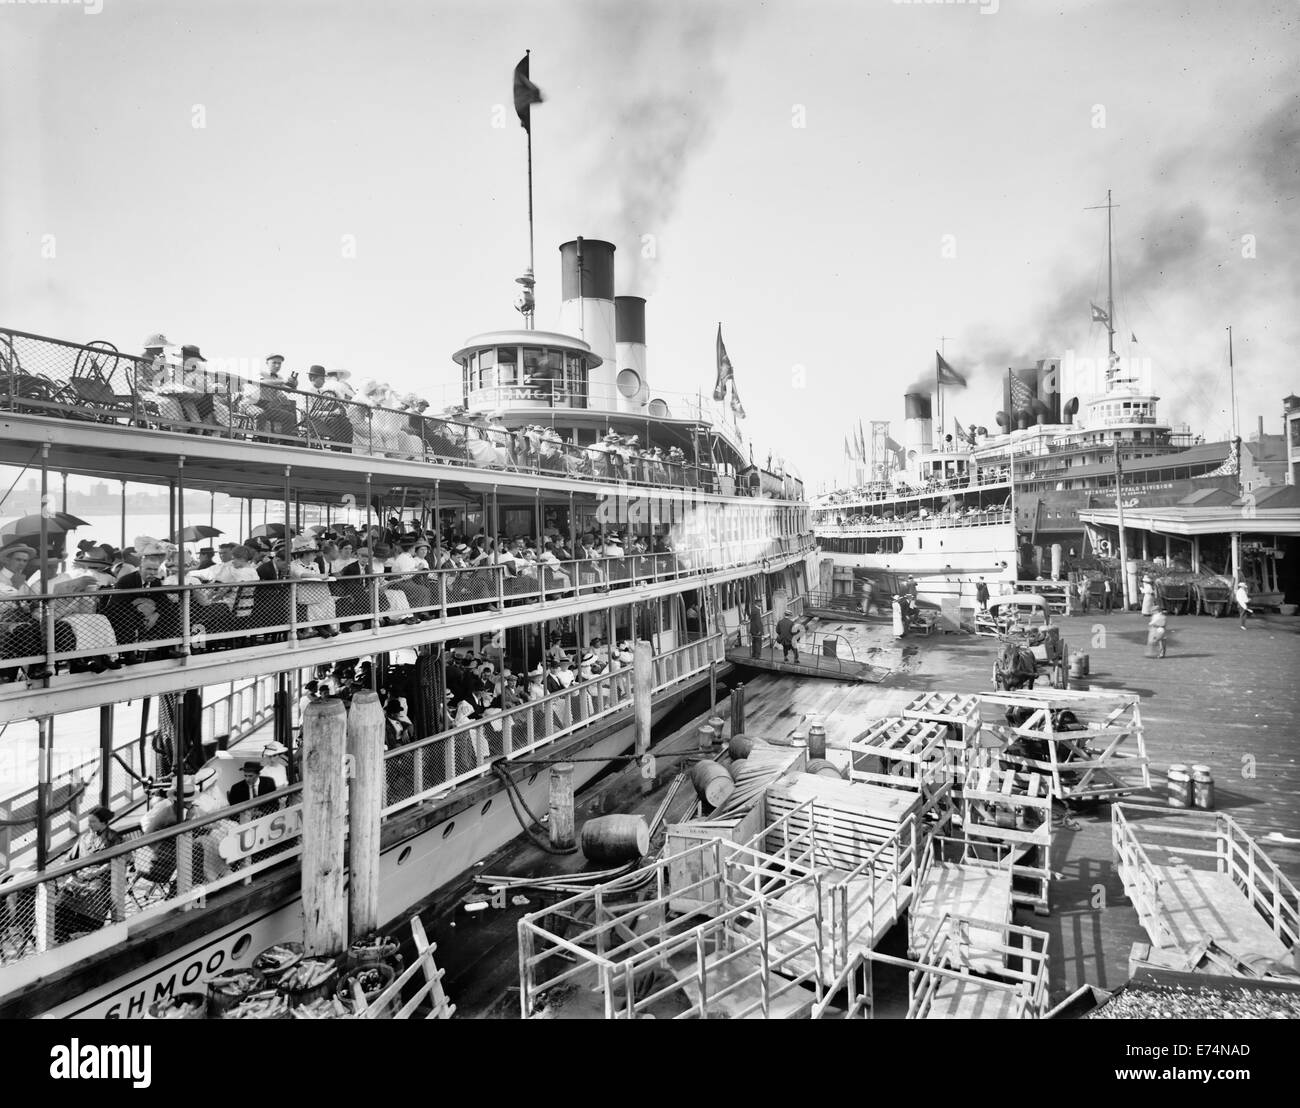 White Star Line dock, Detroit, Michigan, circa 1915 - Stock Image